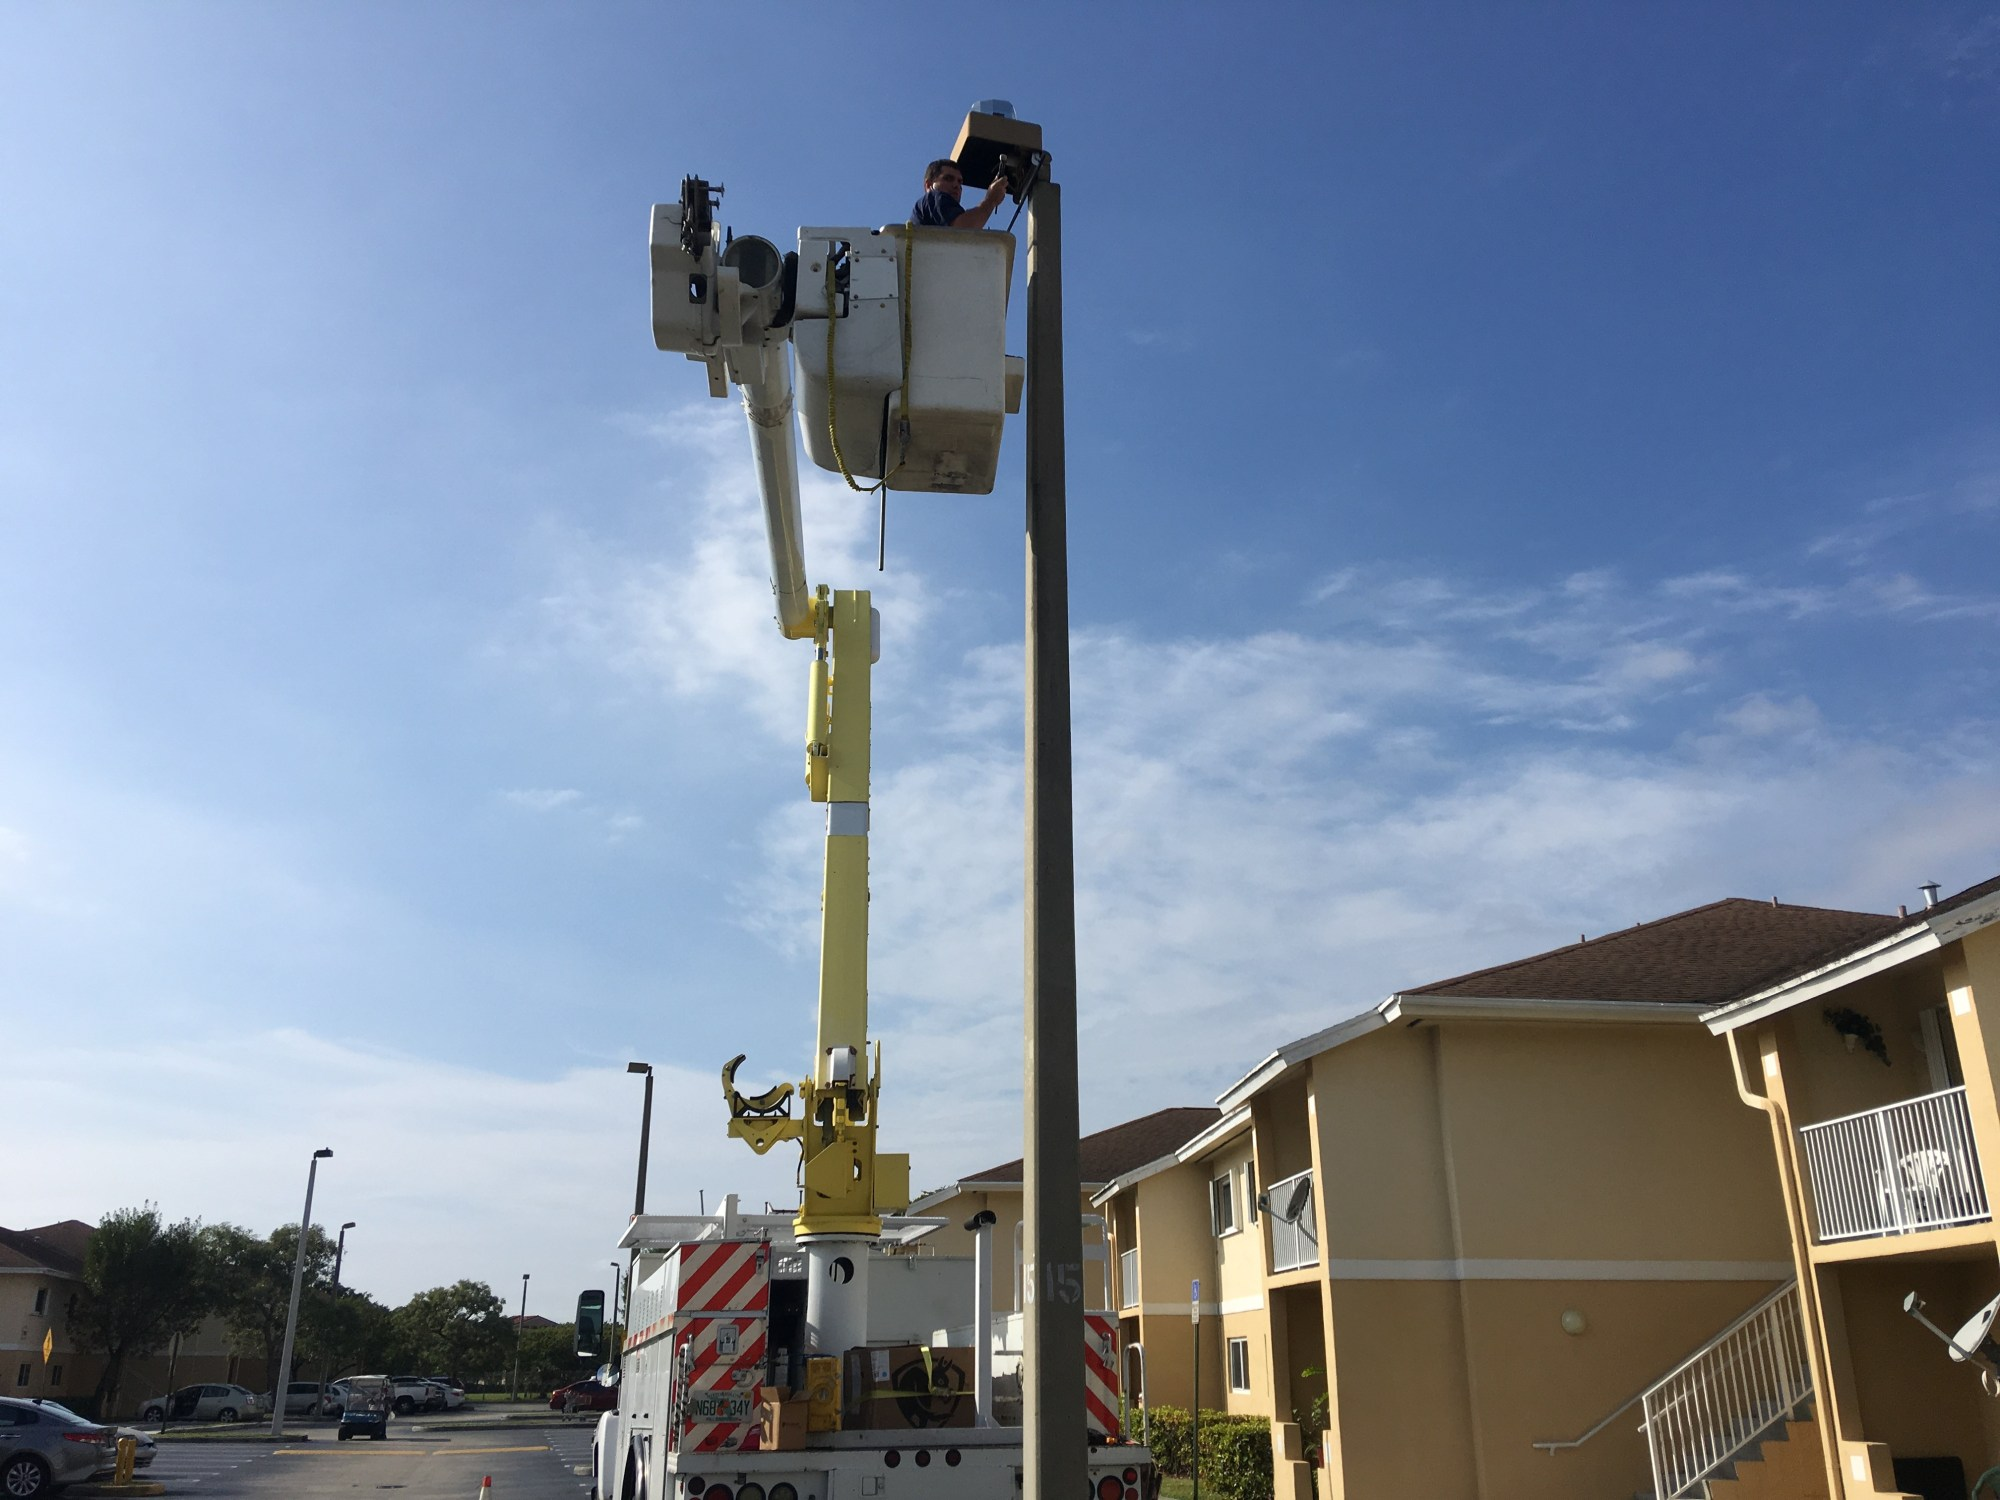 hight resolution of electric service repair provides bucket truck electrical services to any area in the south florida region including miami dade county miami